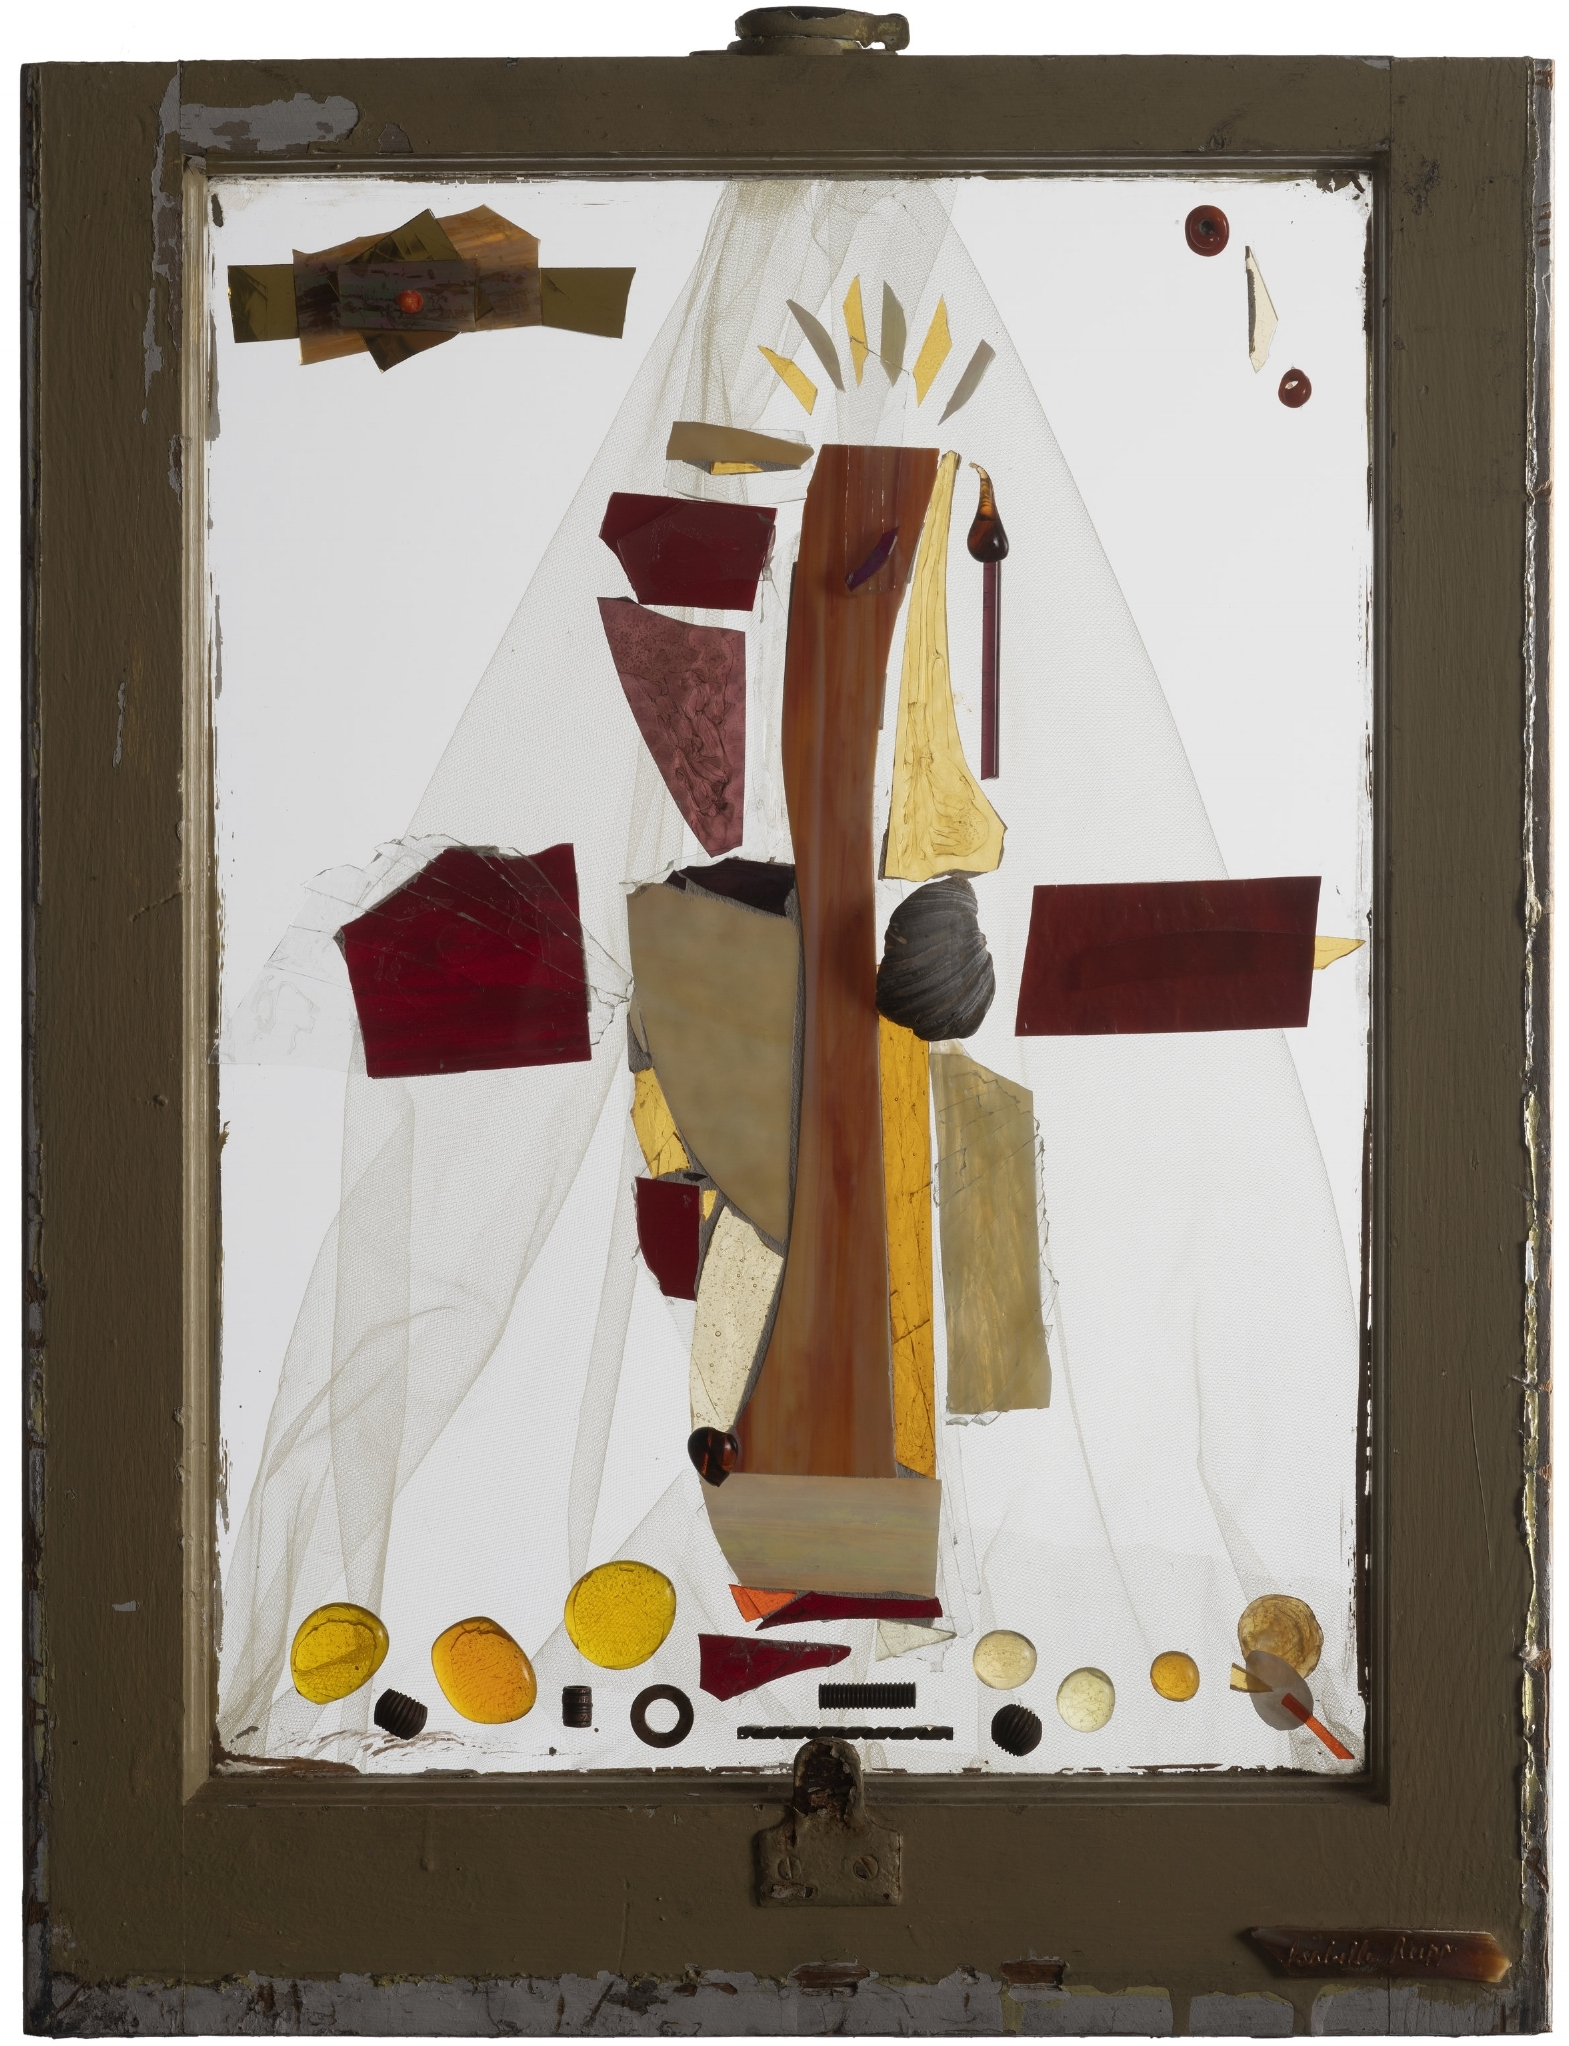 The One Without A Name, 2009. Flameworked and cold-cut glass, shells, metal, fabric, 22 ½  x 18 in.   Window from Chelsea, New York, NY